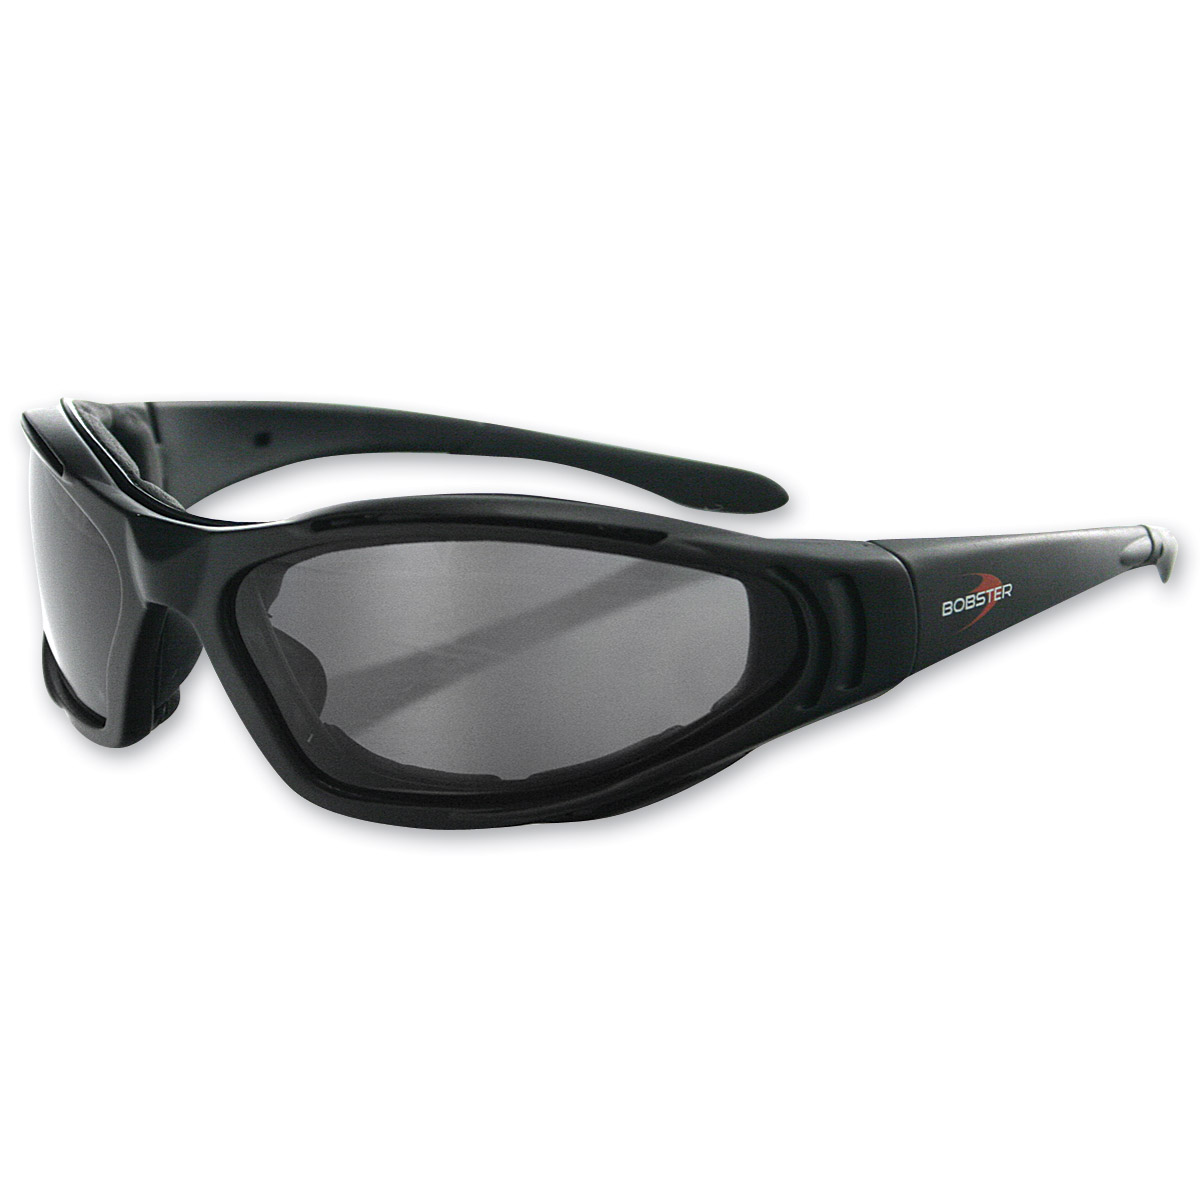 Bobster Raptor II Interchangeable Eyewear